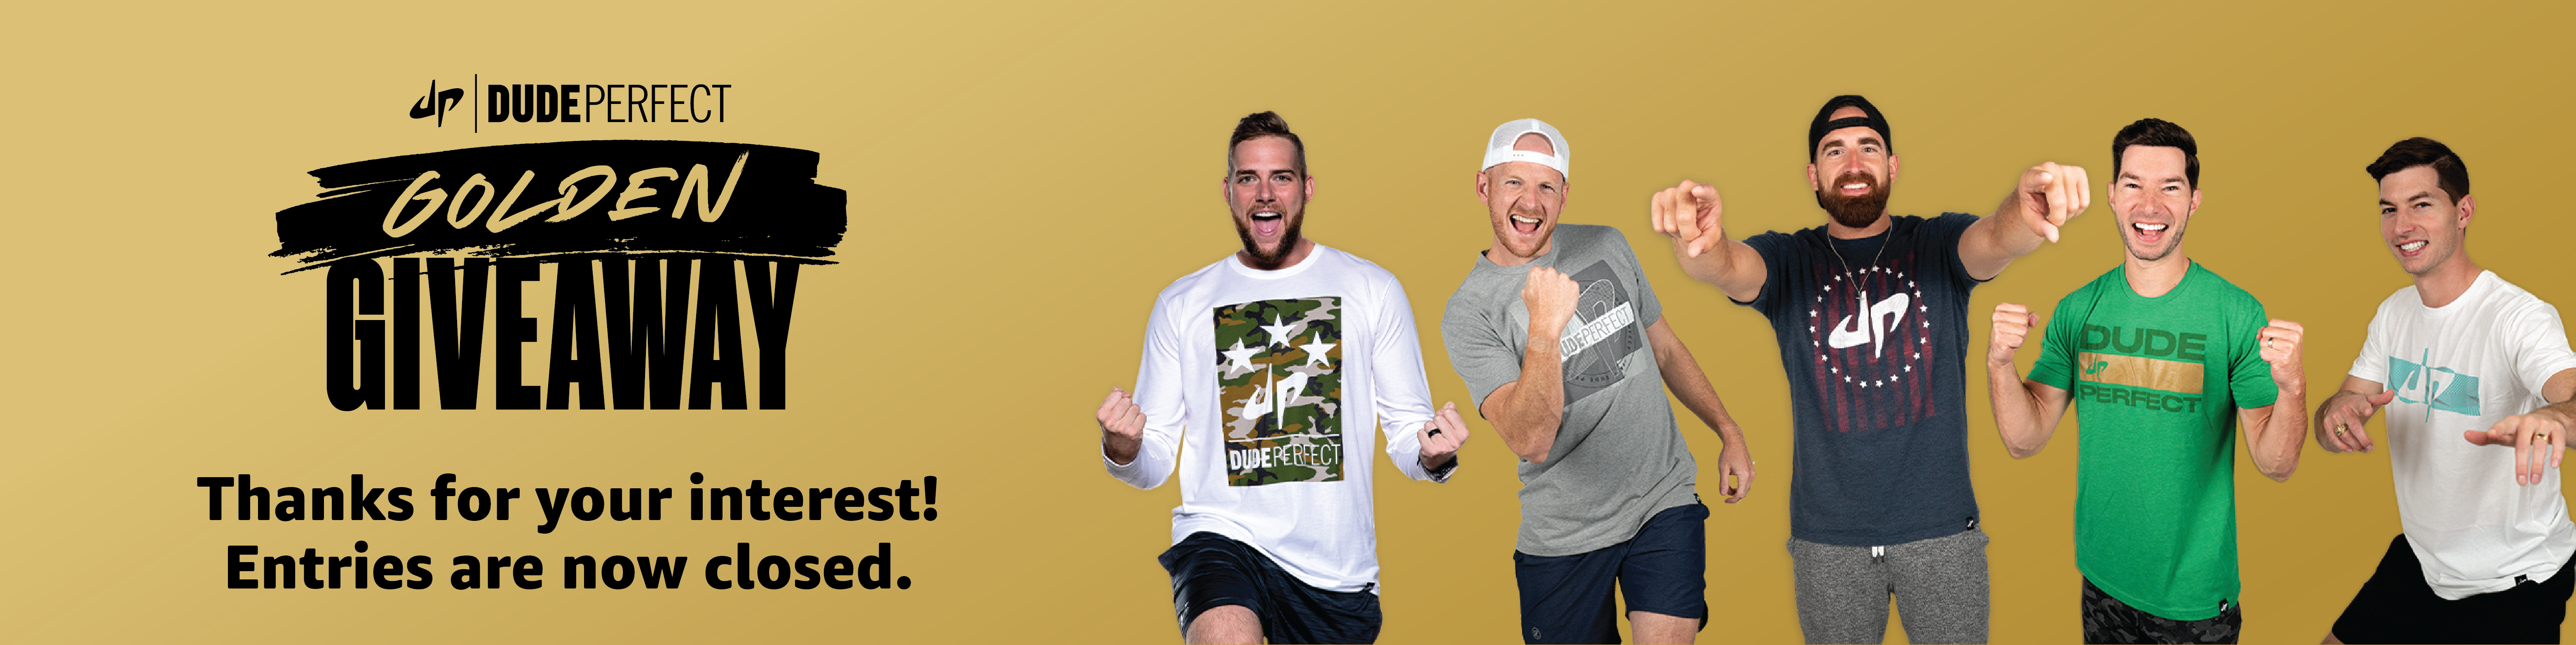 Thanks for your interest. Enteries are now closed for the Dude Perfect Golden Giveaway.